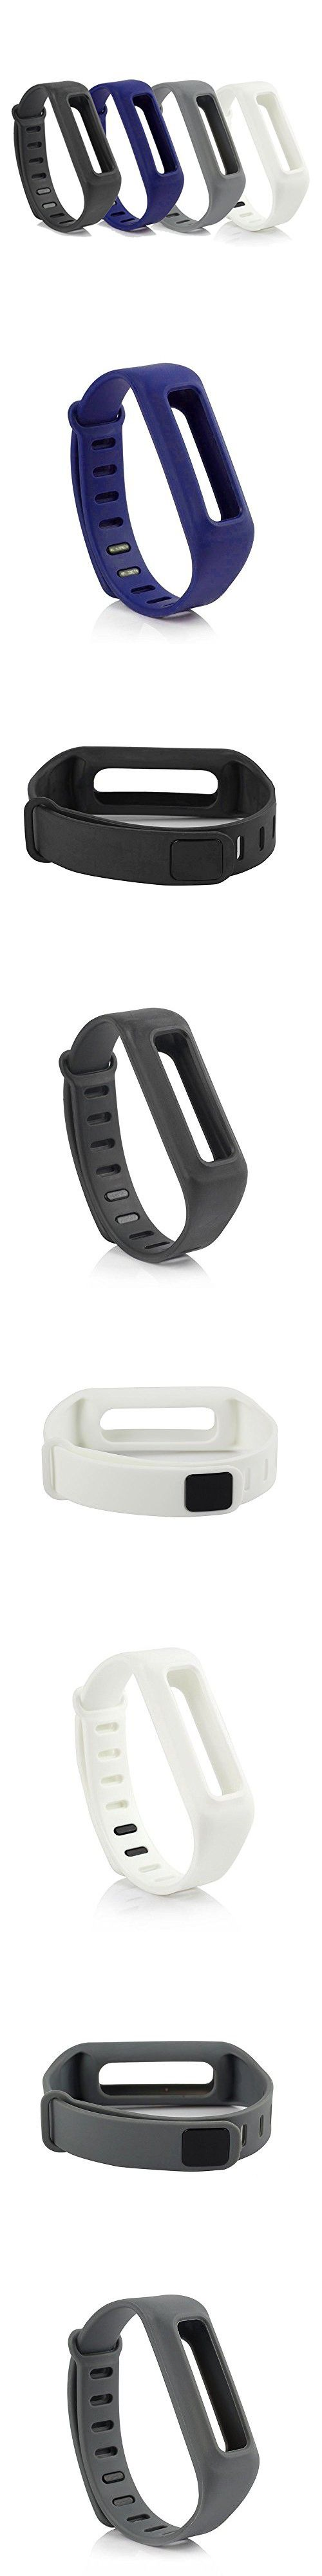 HoneyLife Fitbit One fashion White Silicone Replacement Wristband Bracelet/ Wireless Activity Plus Sleep Tracker Accessory Band with Safety Clasp